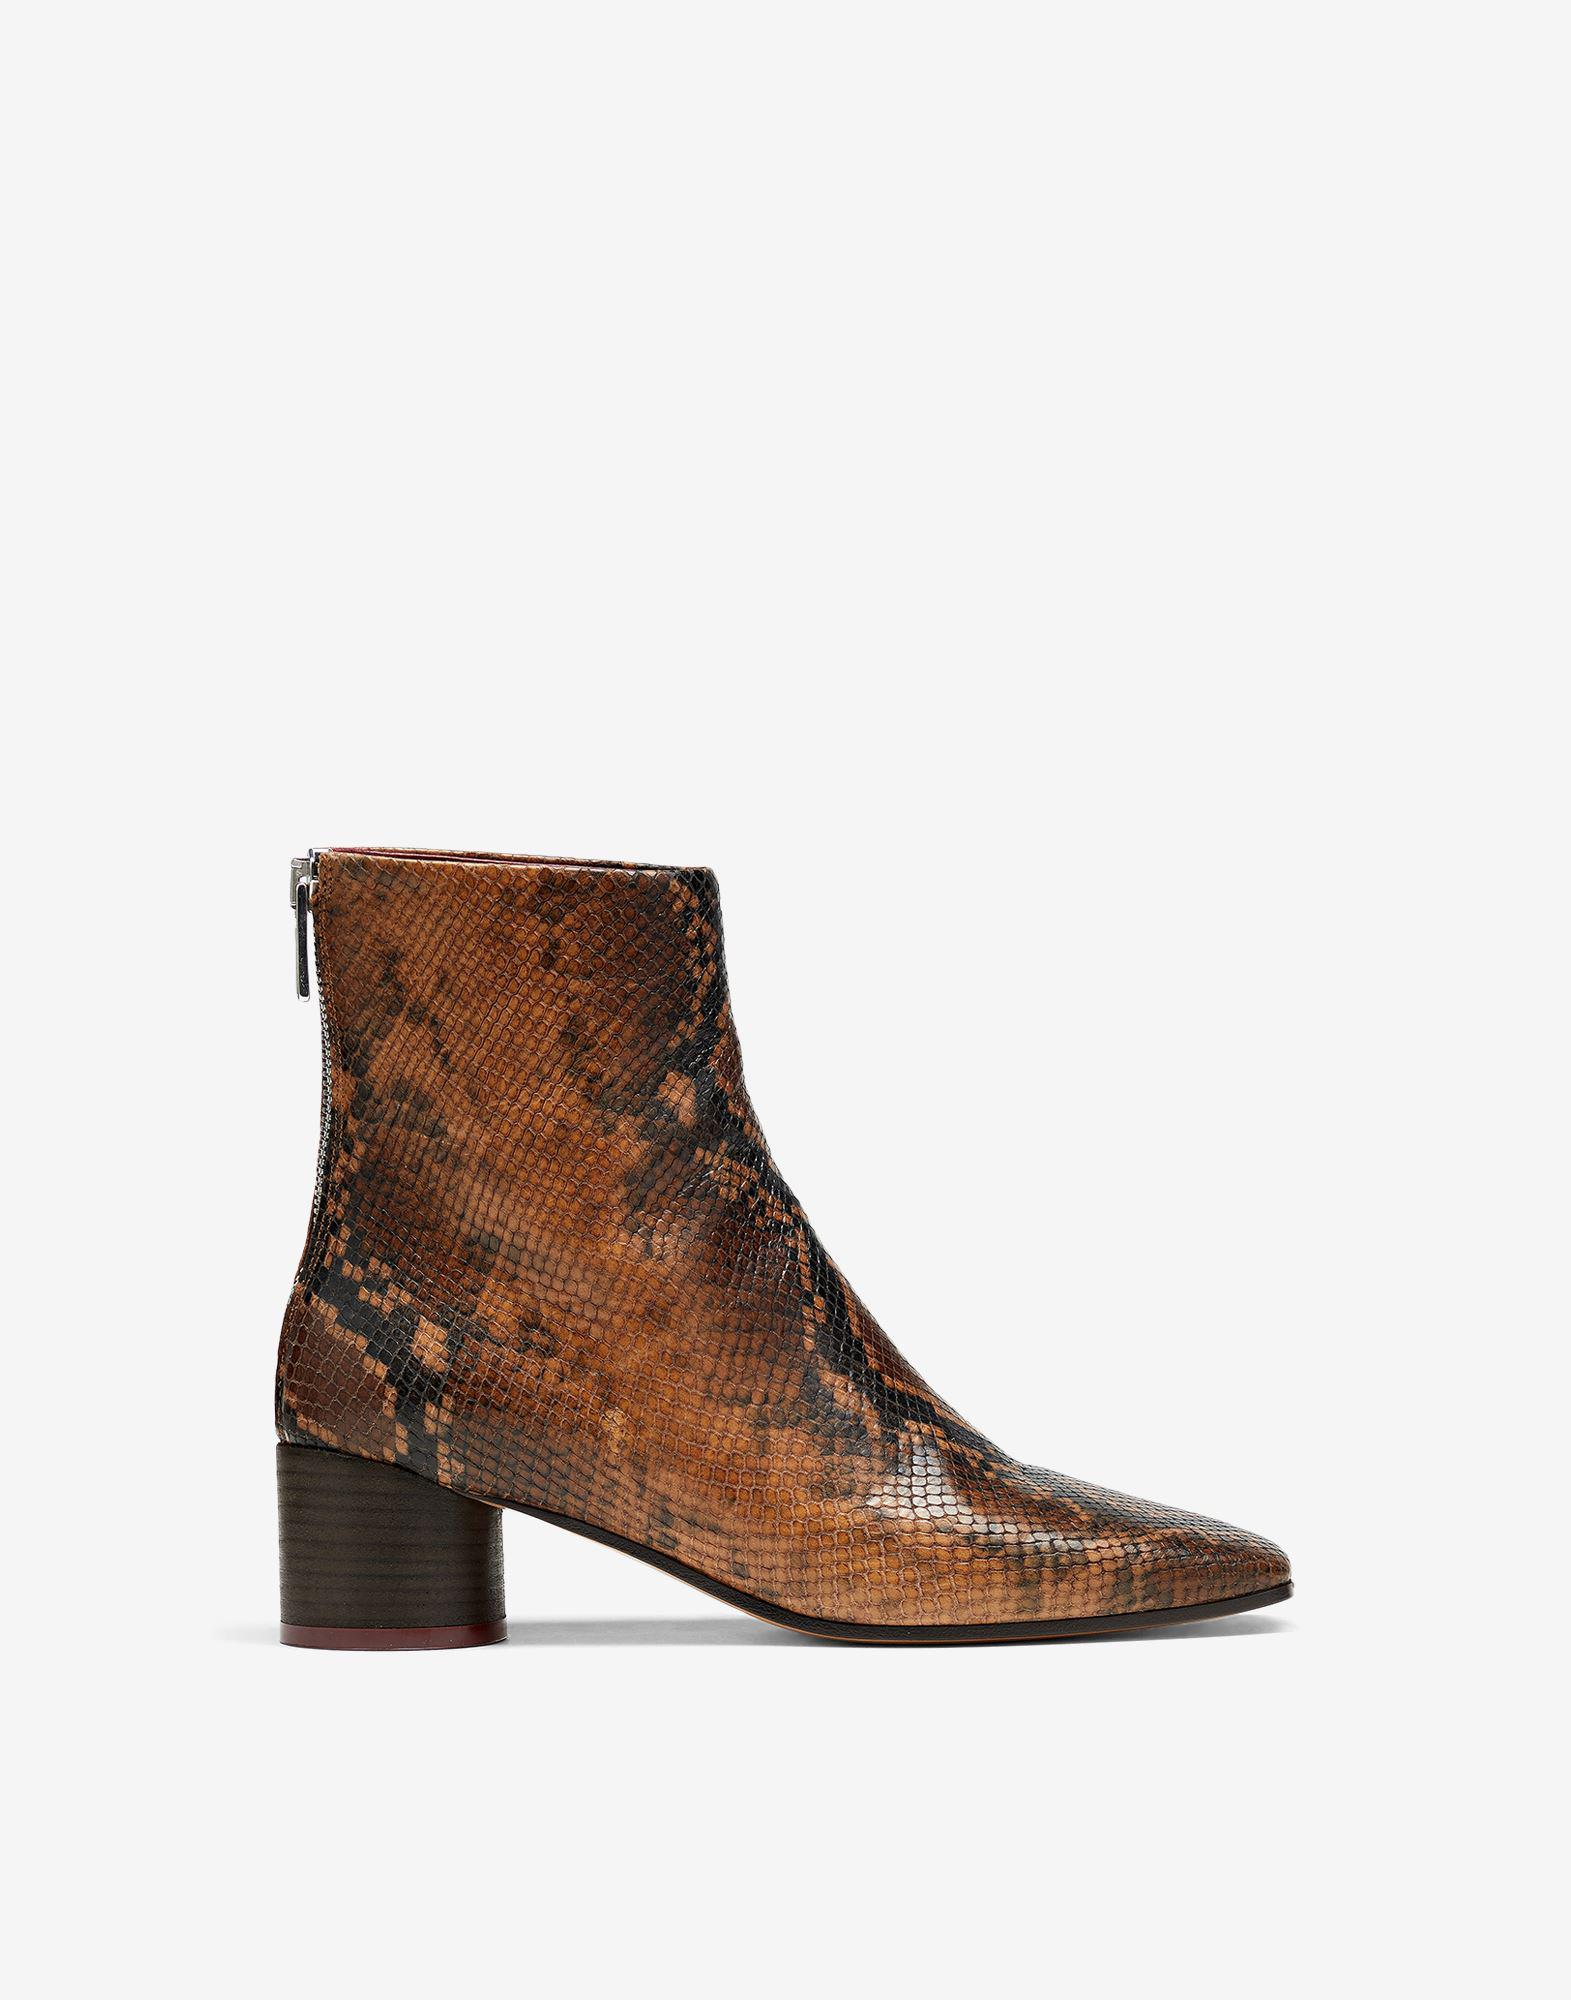 Square toe 6 heel ankle boots